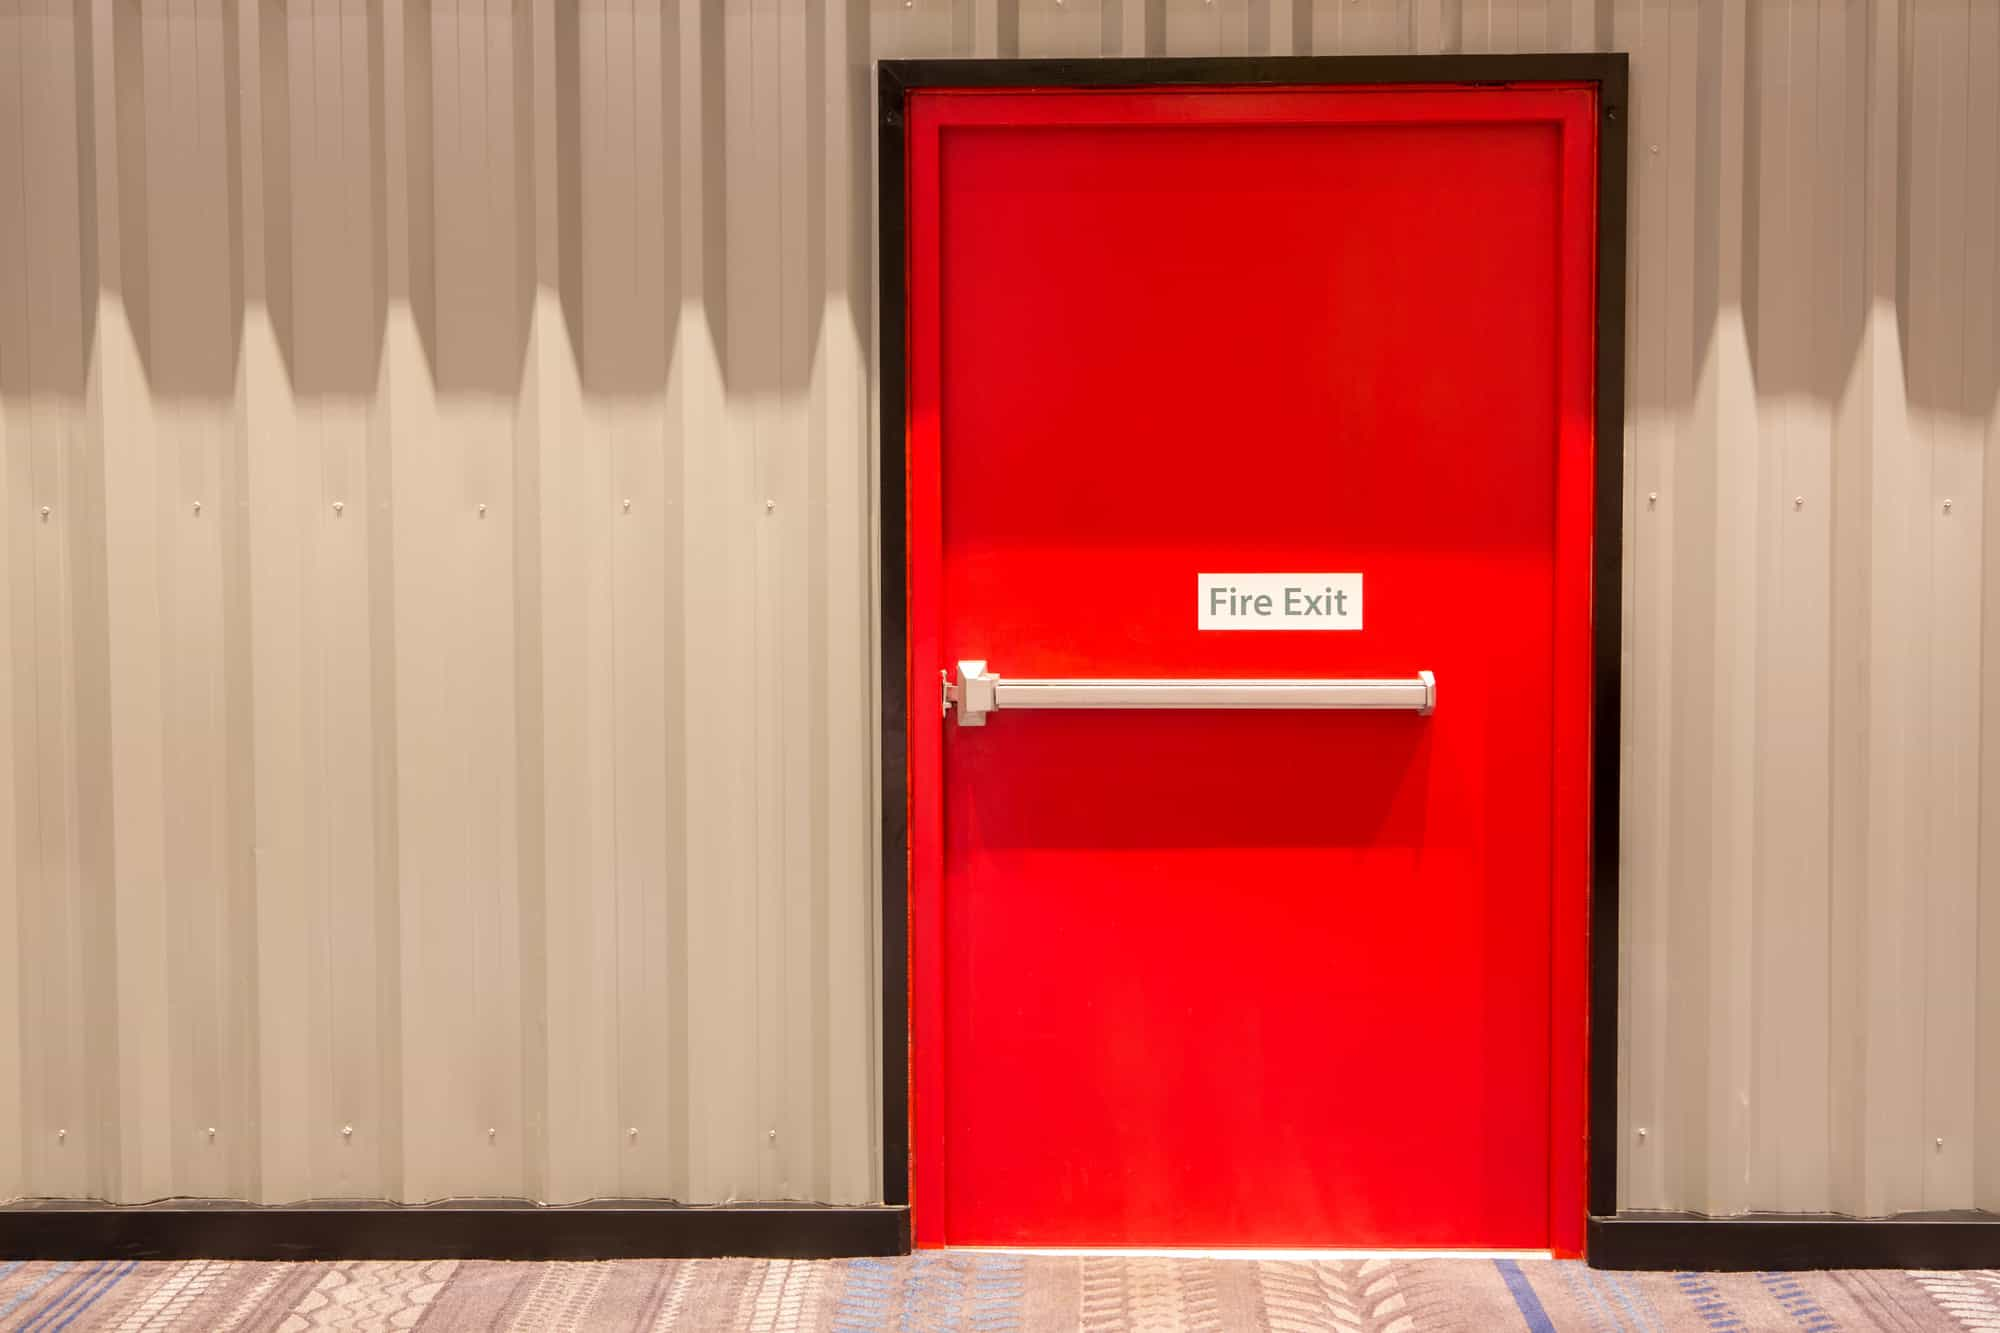 You are here Home / Business / When are Fire Doors Required? Keeping Your Home Safe & When are Fire Doors Required? - Florida Independent